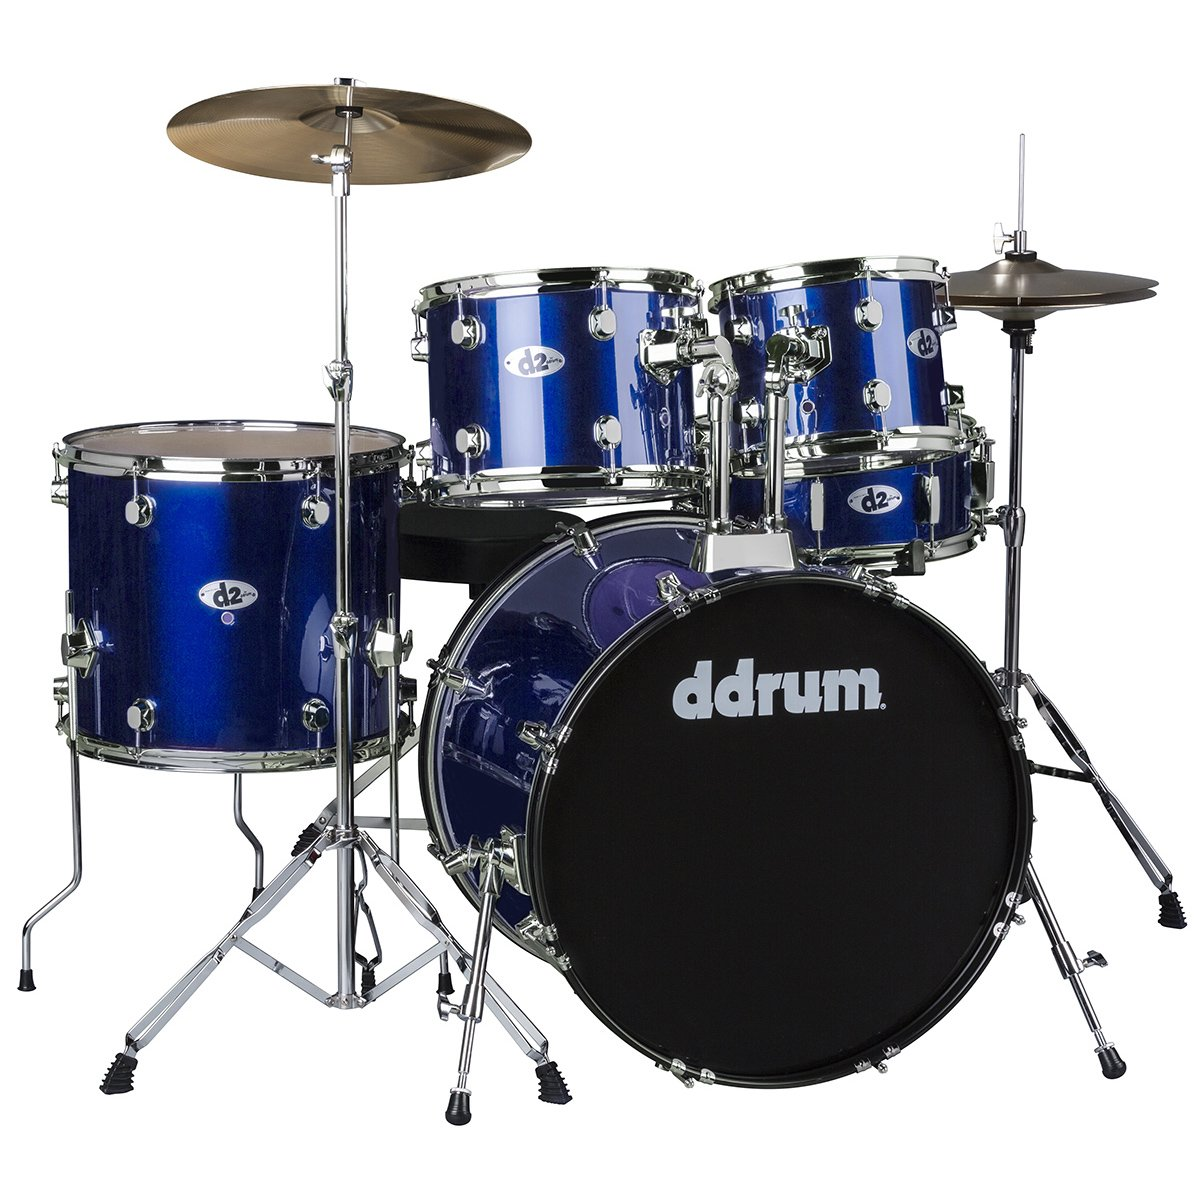 DDRUM D2 Drum Set 5 pc Complete with Hardware, Cymbals, Sticks, Throne - Police Blue